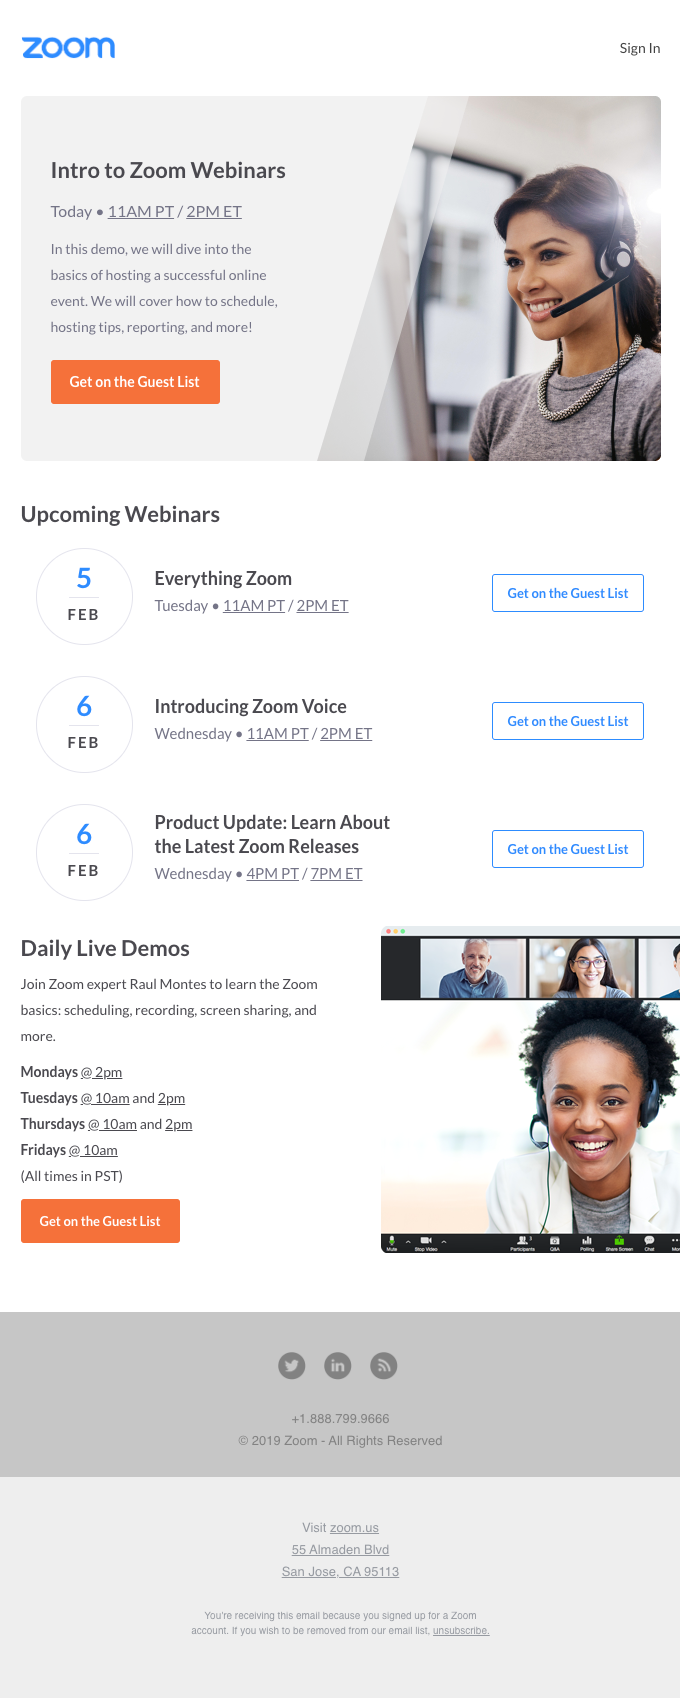 [Live Today] Intro to Zoom Webinars